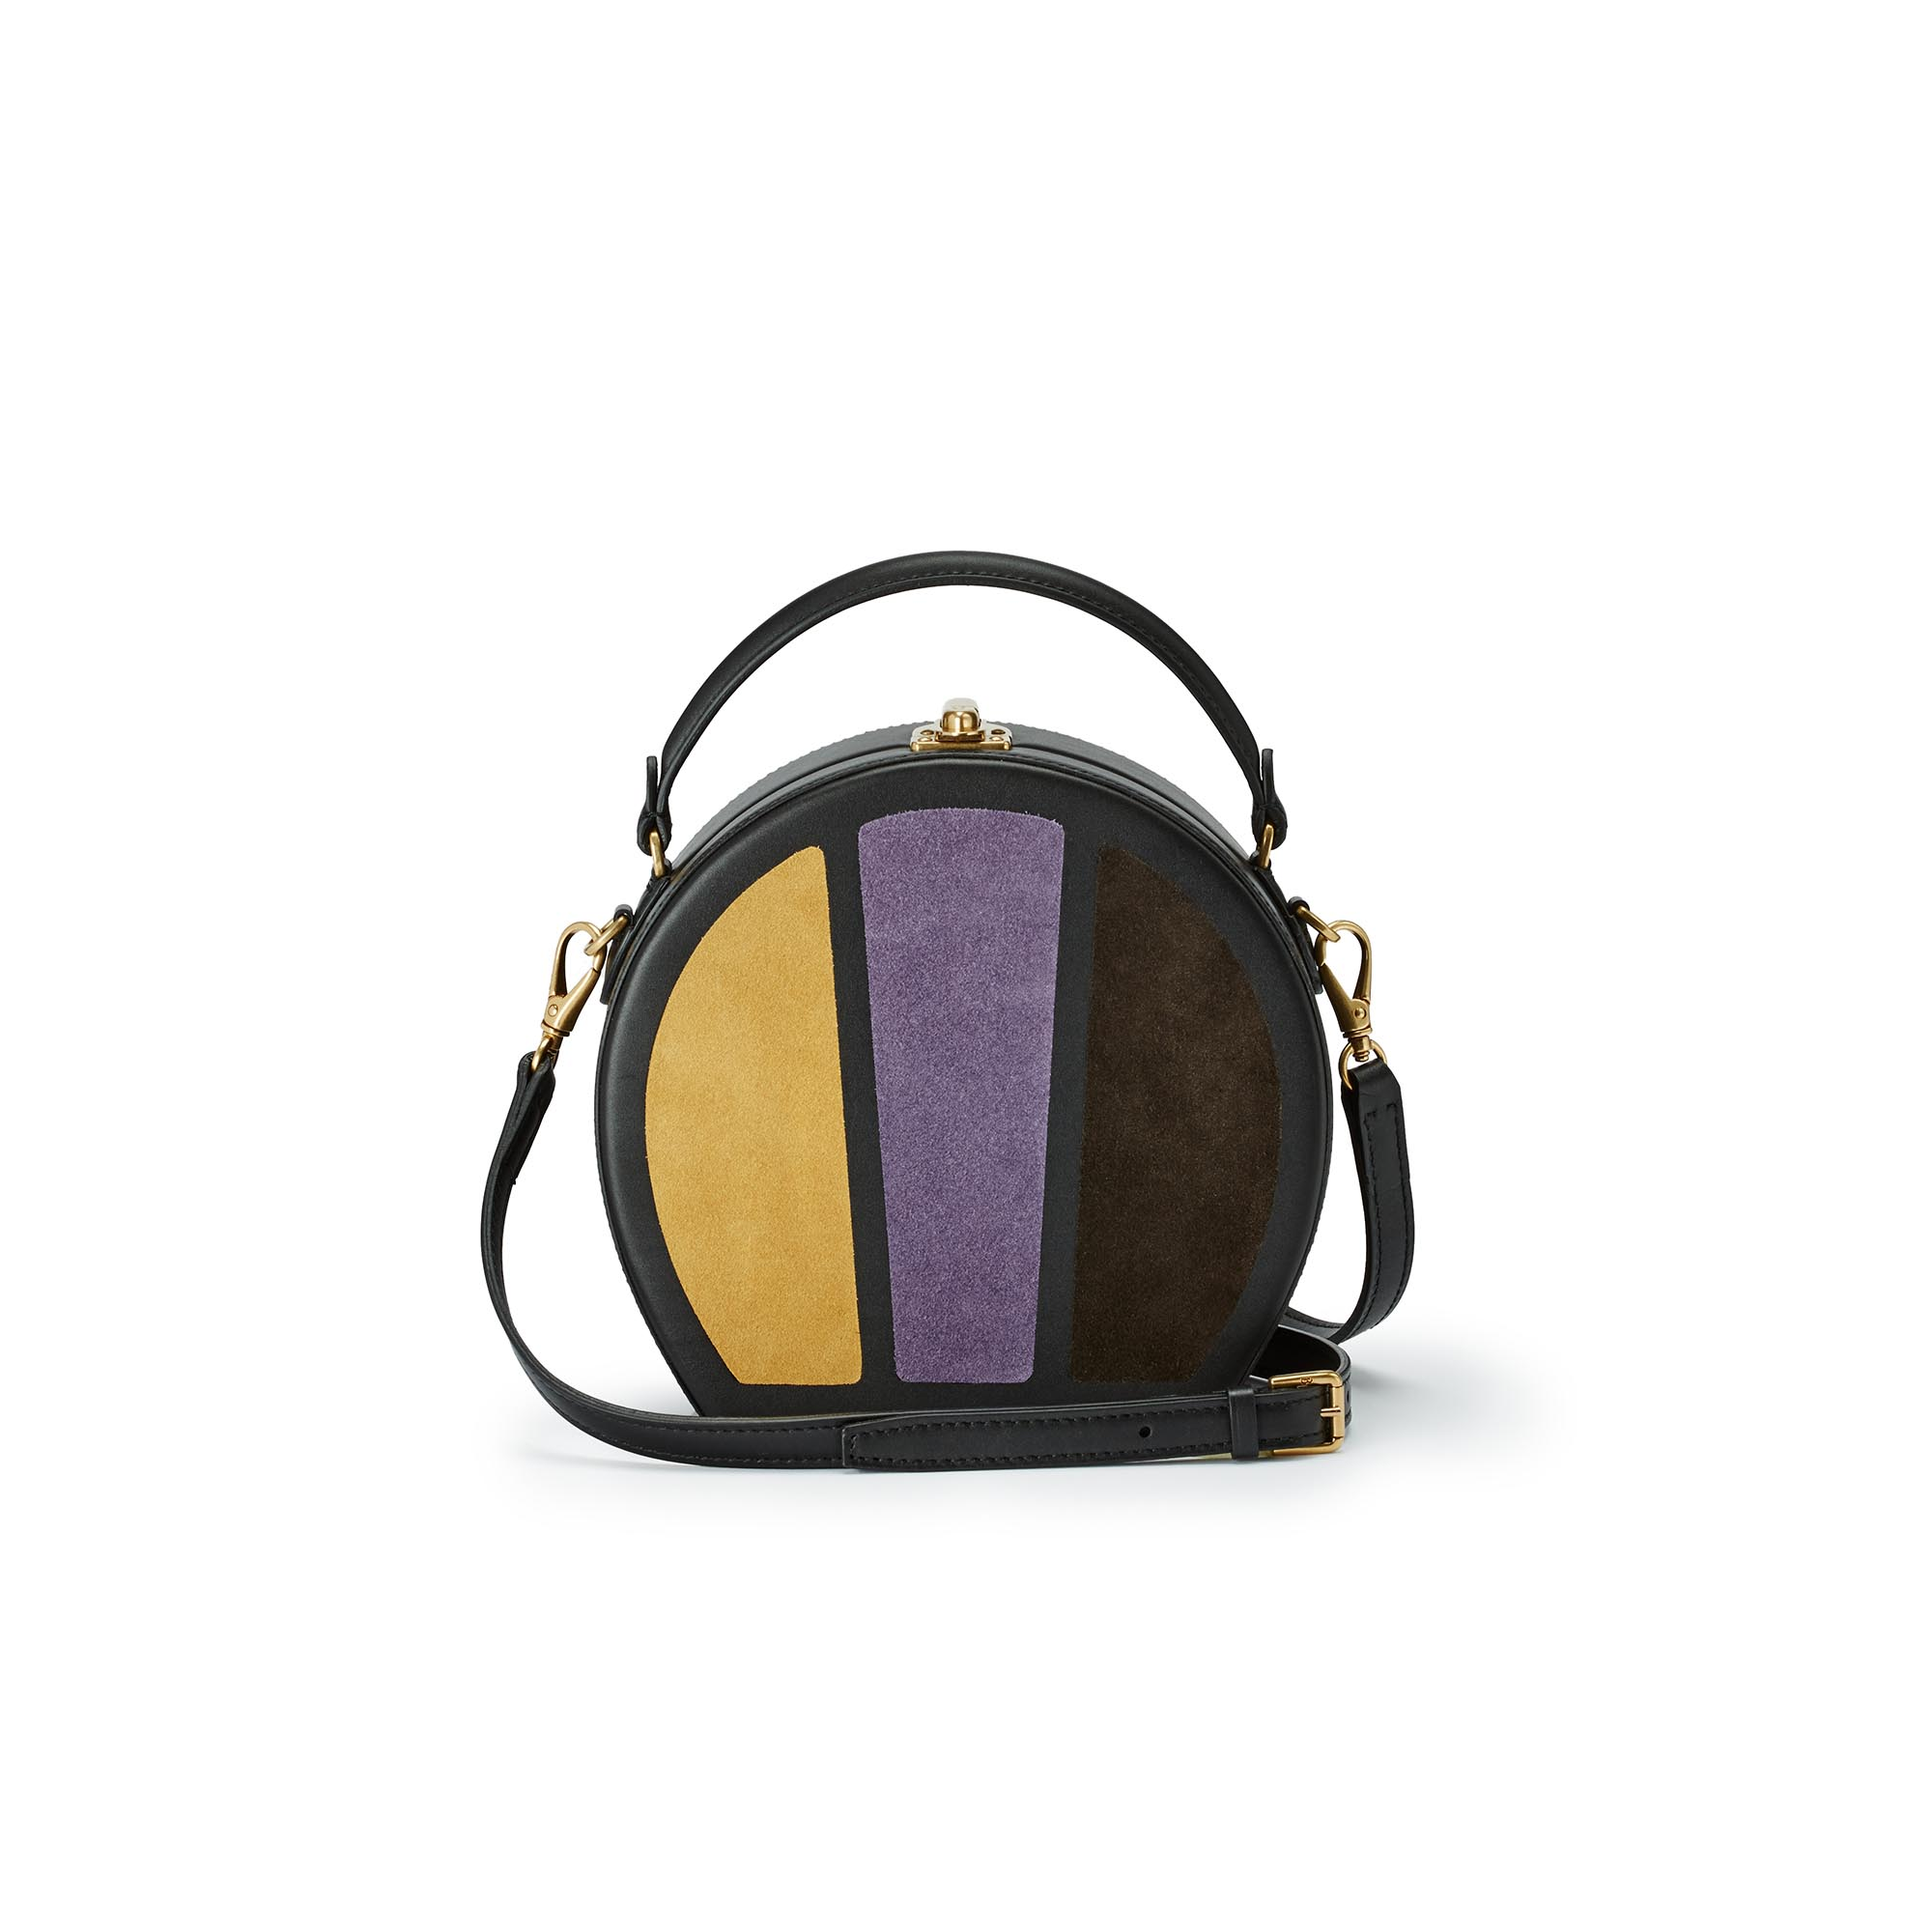 Regular-Bertoncina-yellow-purple-brown-suede-bag-Bertoni-1949_01